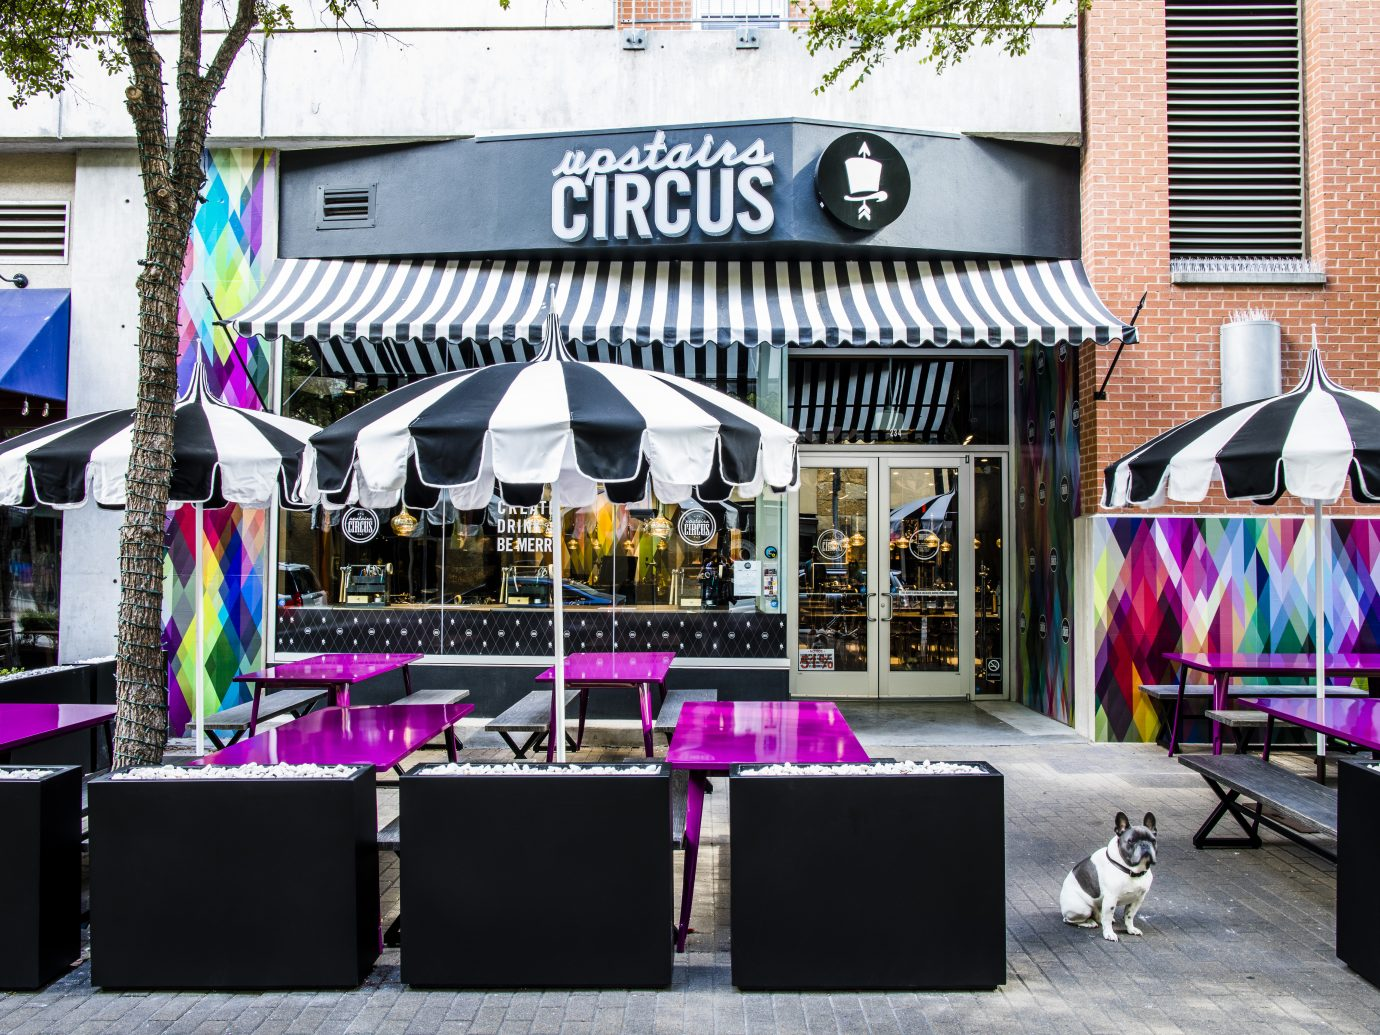 facade and outdoor tables at Upstairs Circus